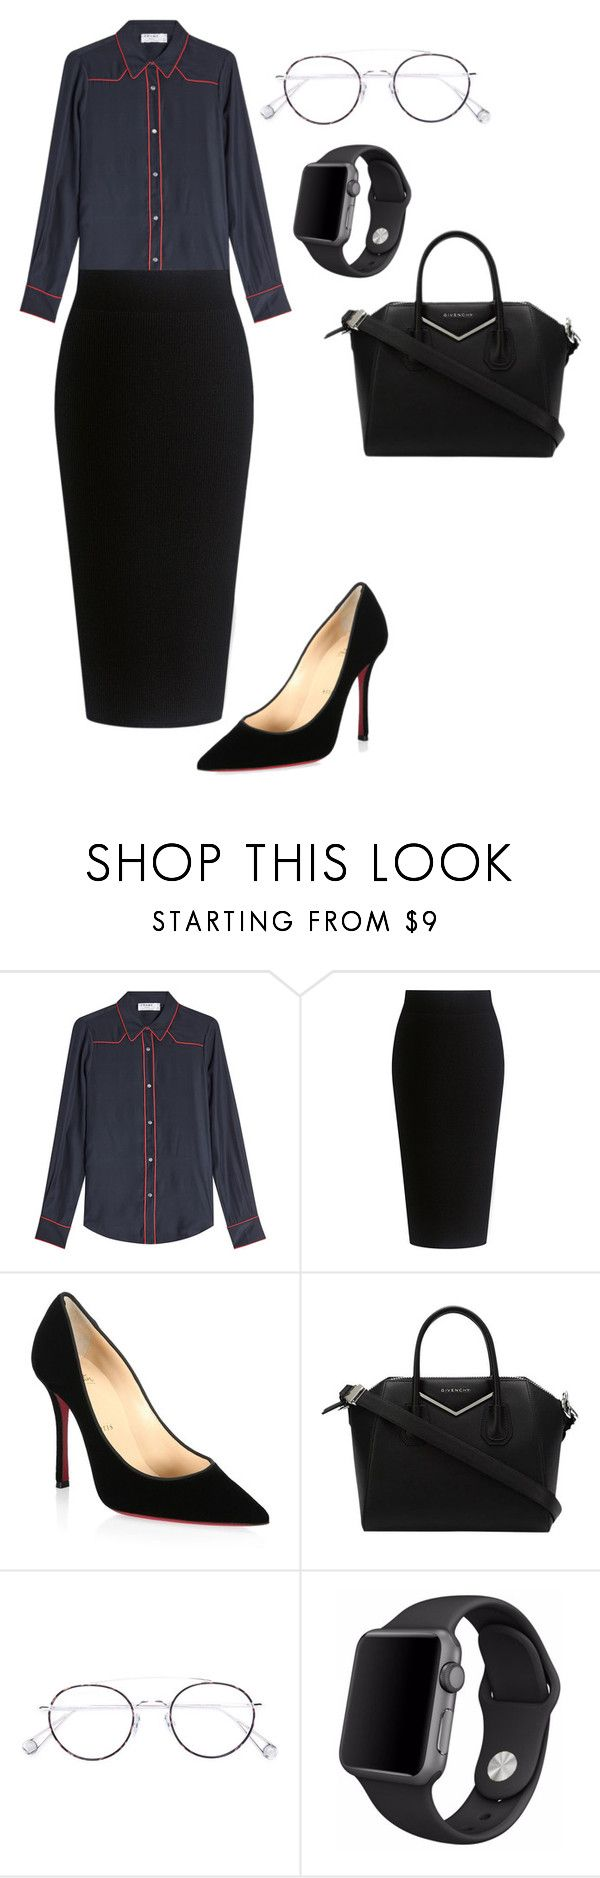 """""""Untitled #218"""" by sweetaoife on Polyvore featuring Frame, Theory, Christian Louboutin, Givenchy, Ahlem and Apple"""